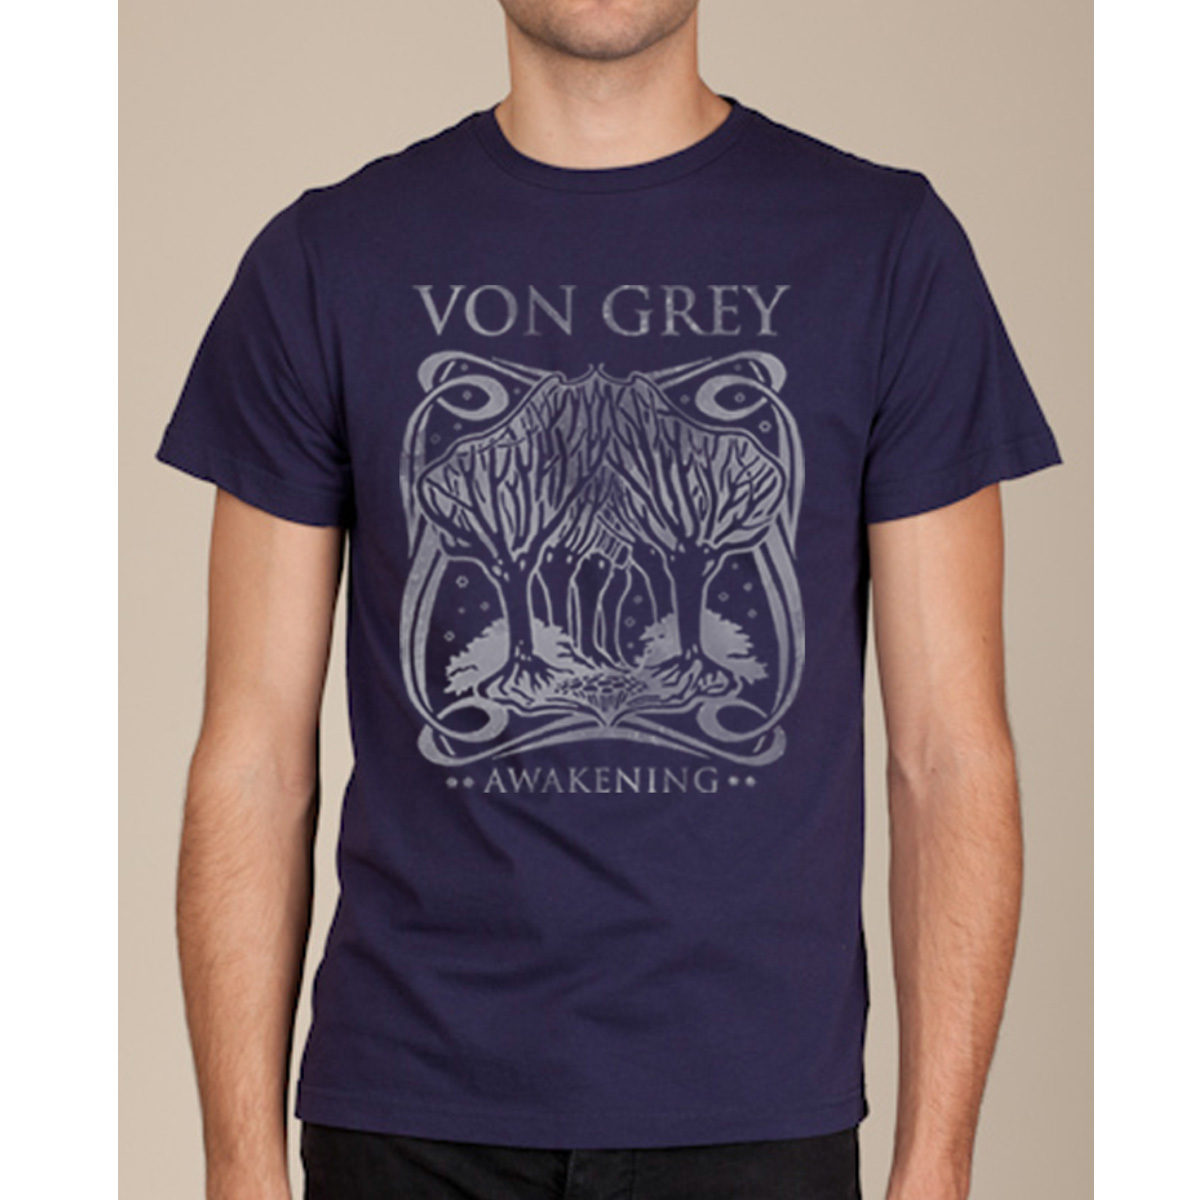 von Grey Awakening Unisex T-Shirt